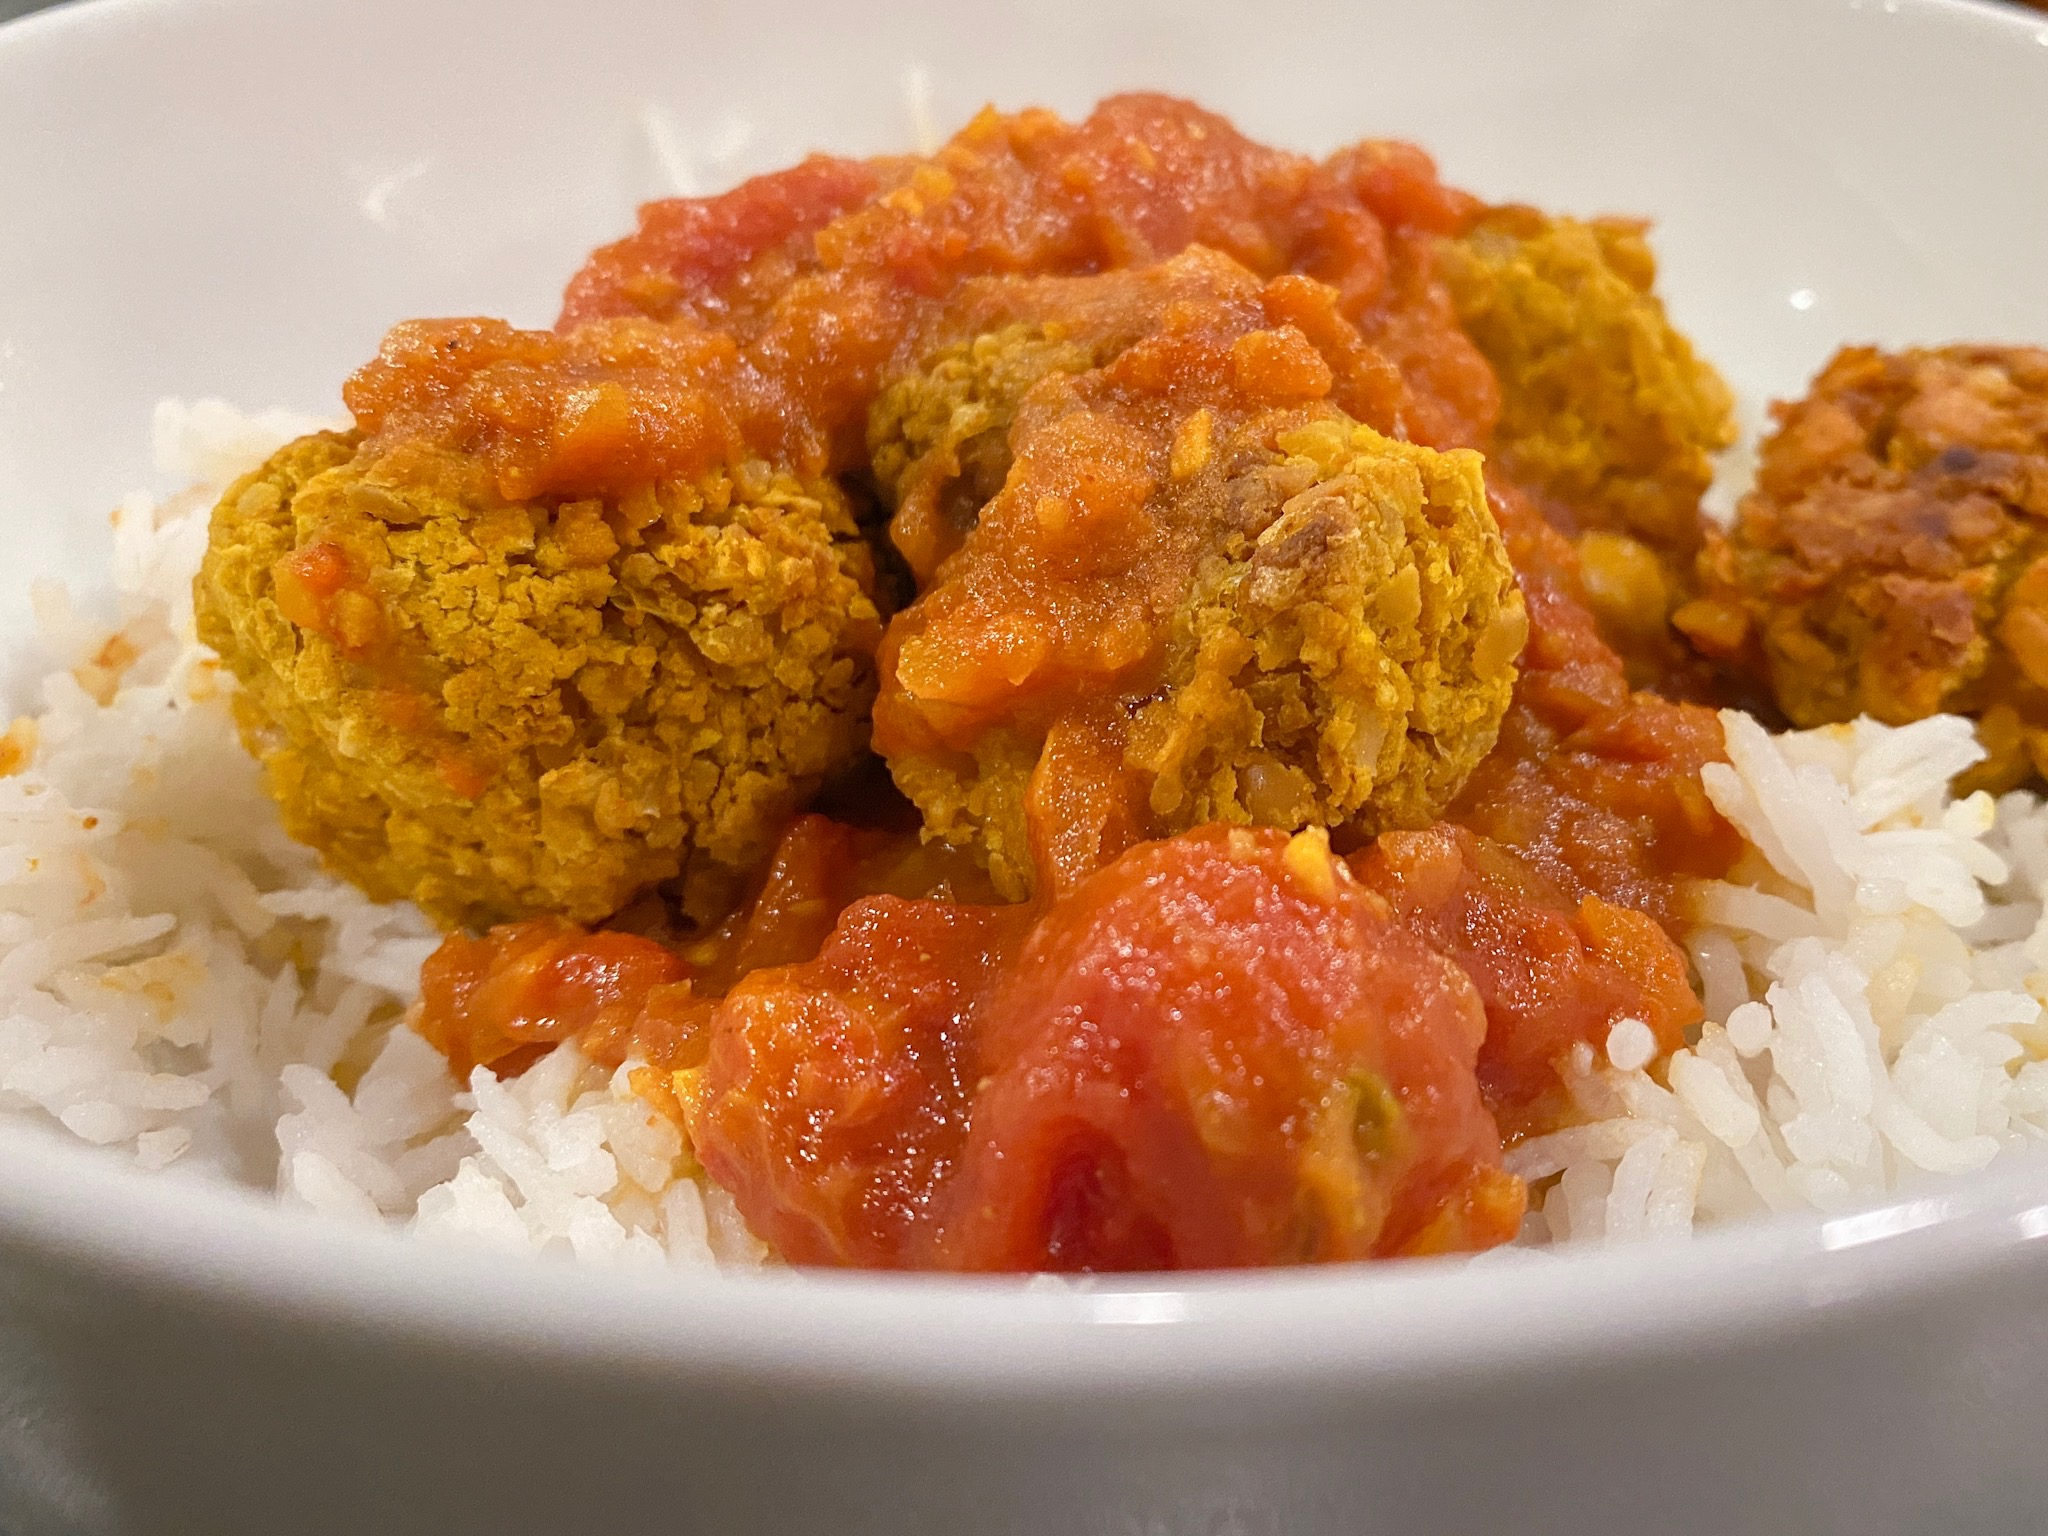 Cold and dreary days demand the rich warmth and comforting smells of Indian spices. These vegan Chickpea Balls in Curry Tomato Sauce will satisfy your craving to nestle in to […]